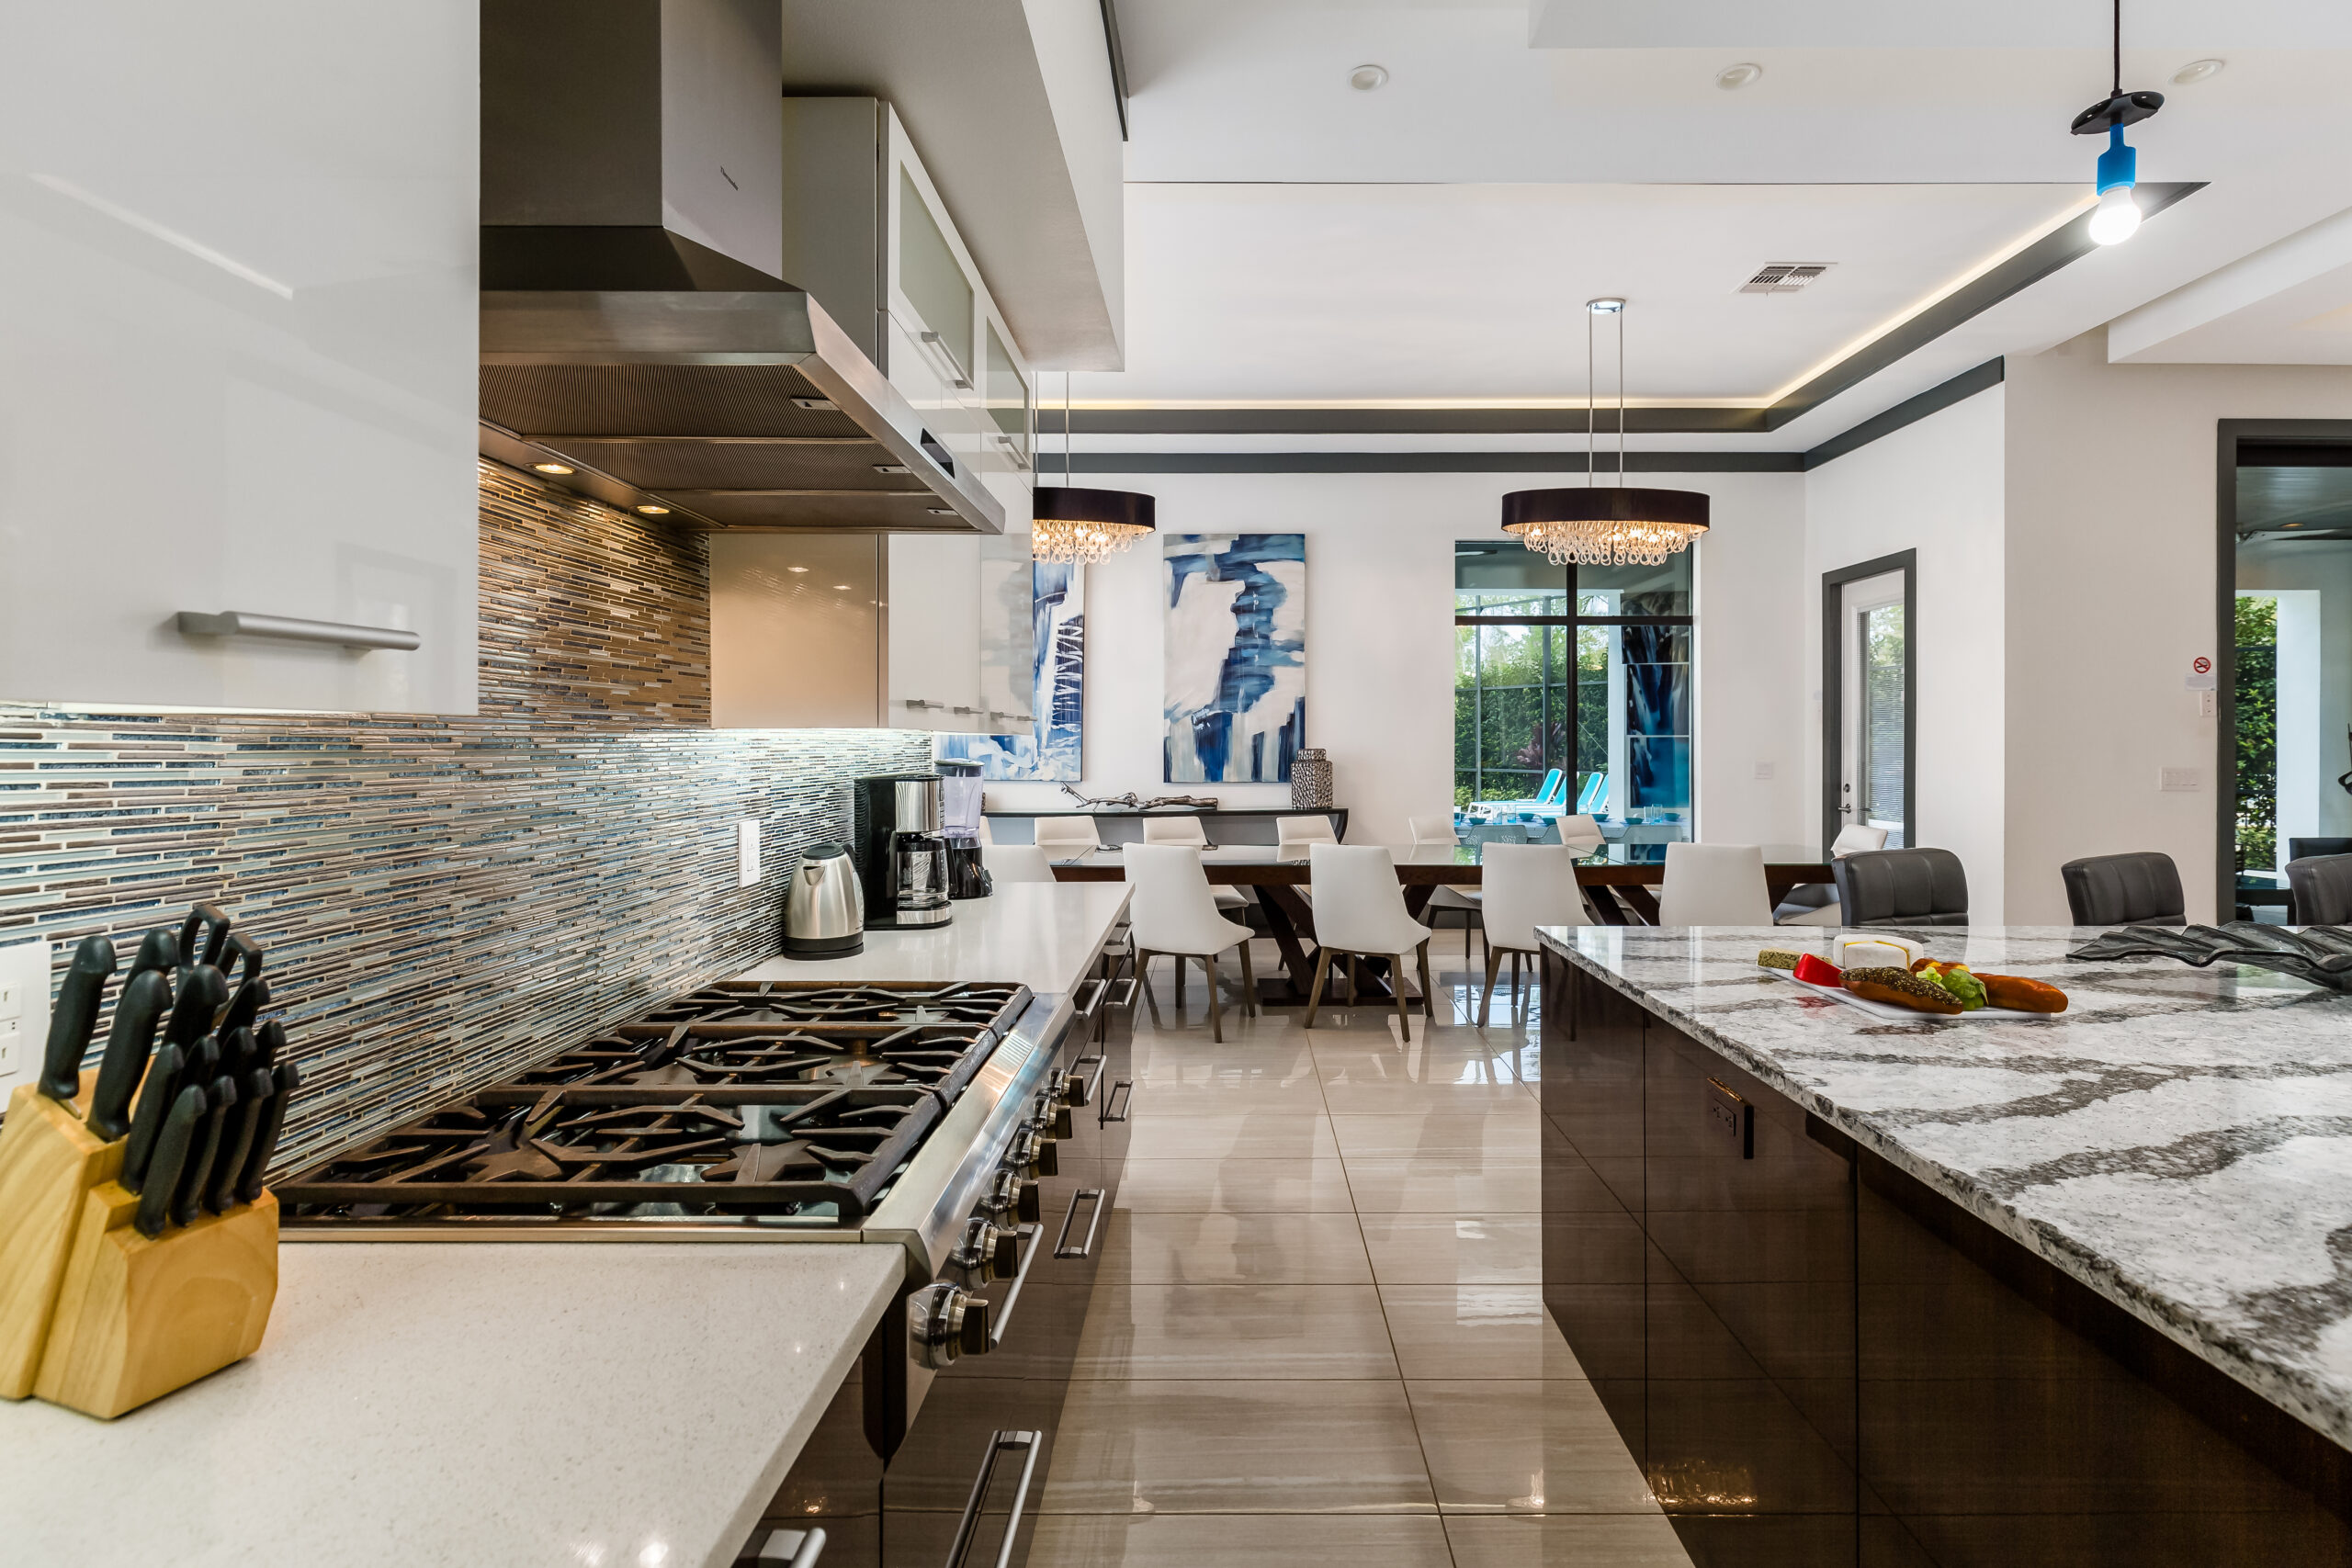 Spacious Kitchen And Other Amenities